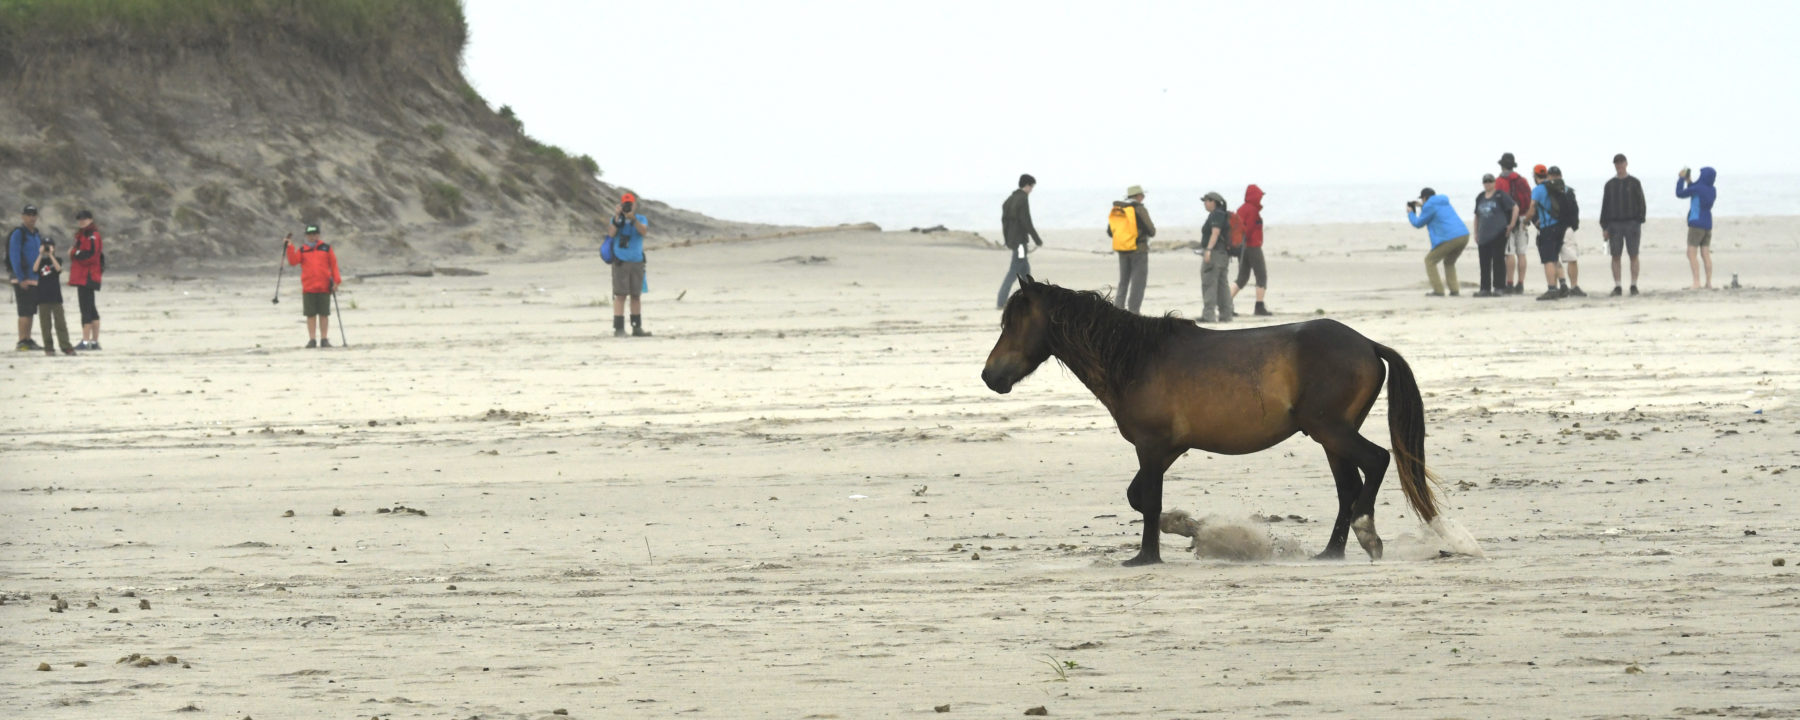 Sable Island and its wild horses provide excellent conditions for taking images.